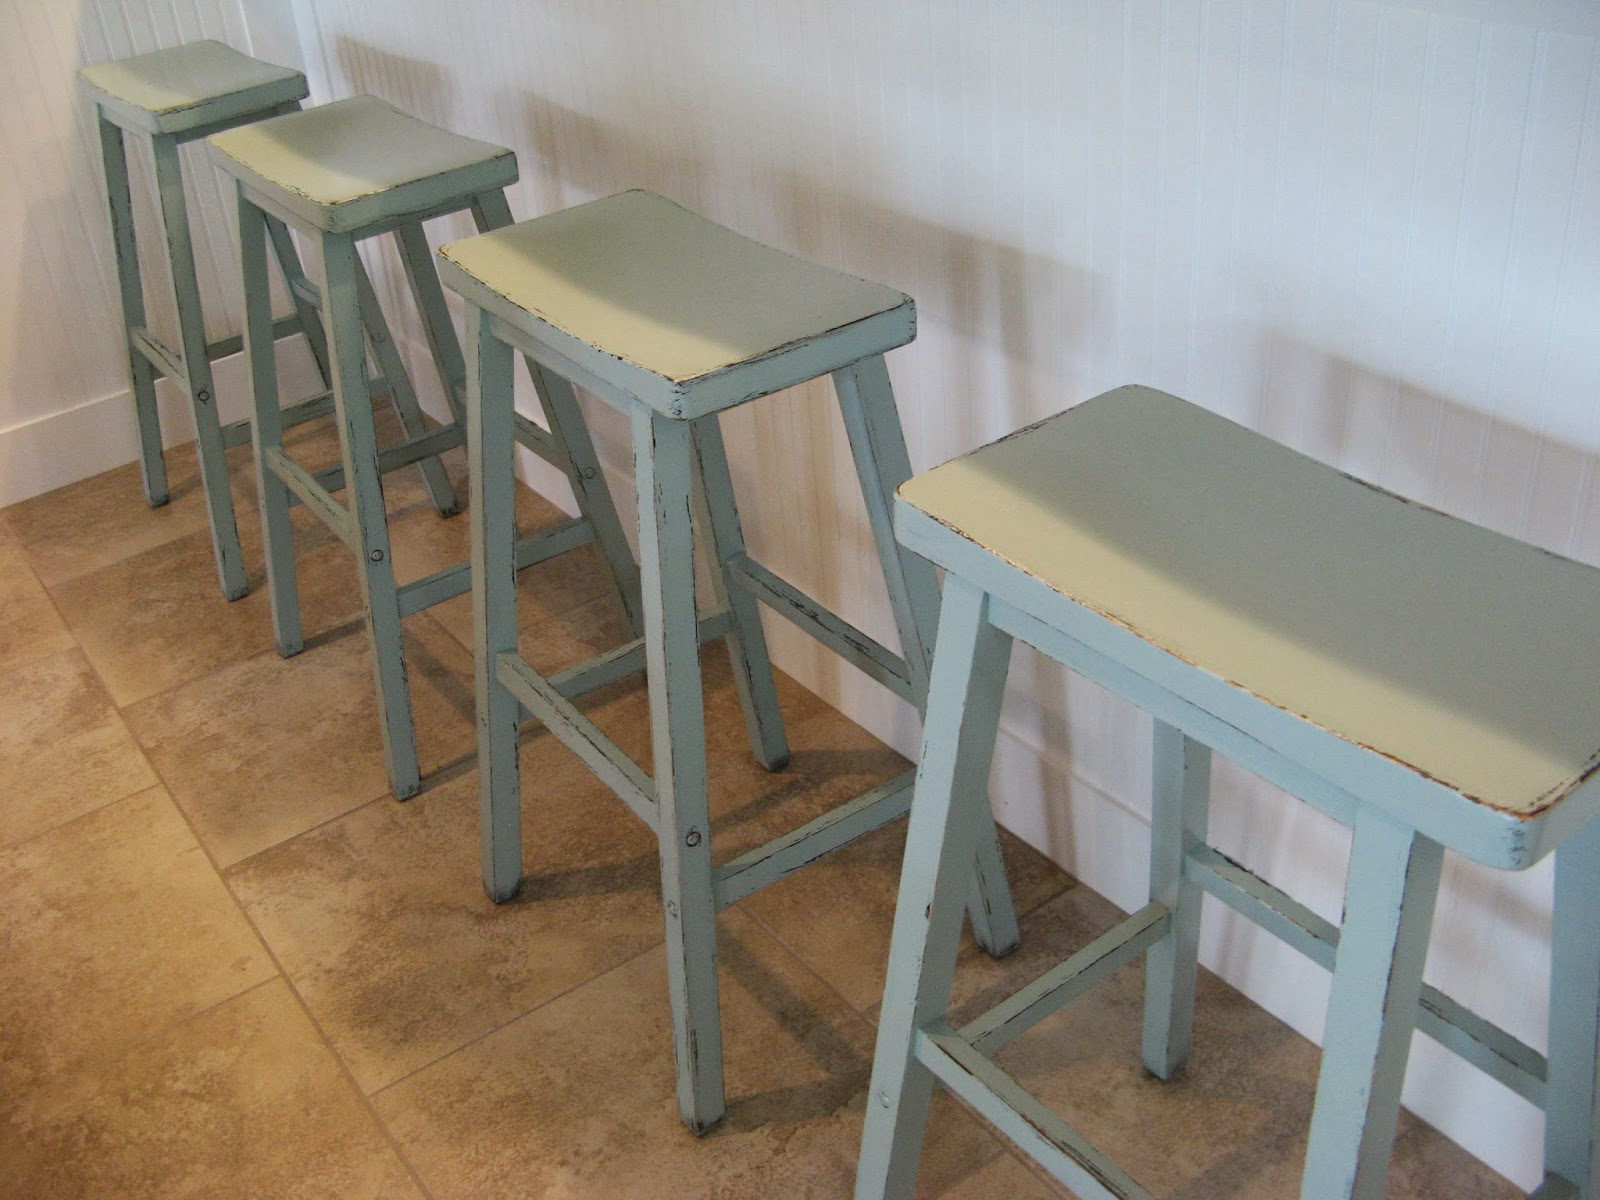 Bar Stools - Distressed Painted Candlewax Technique